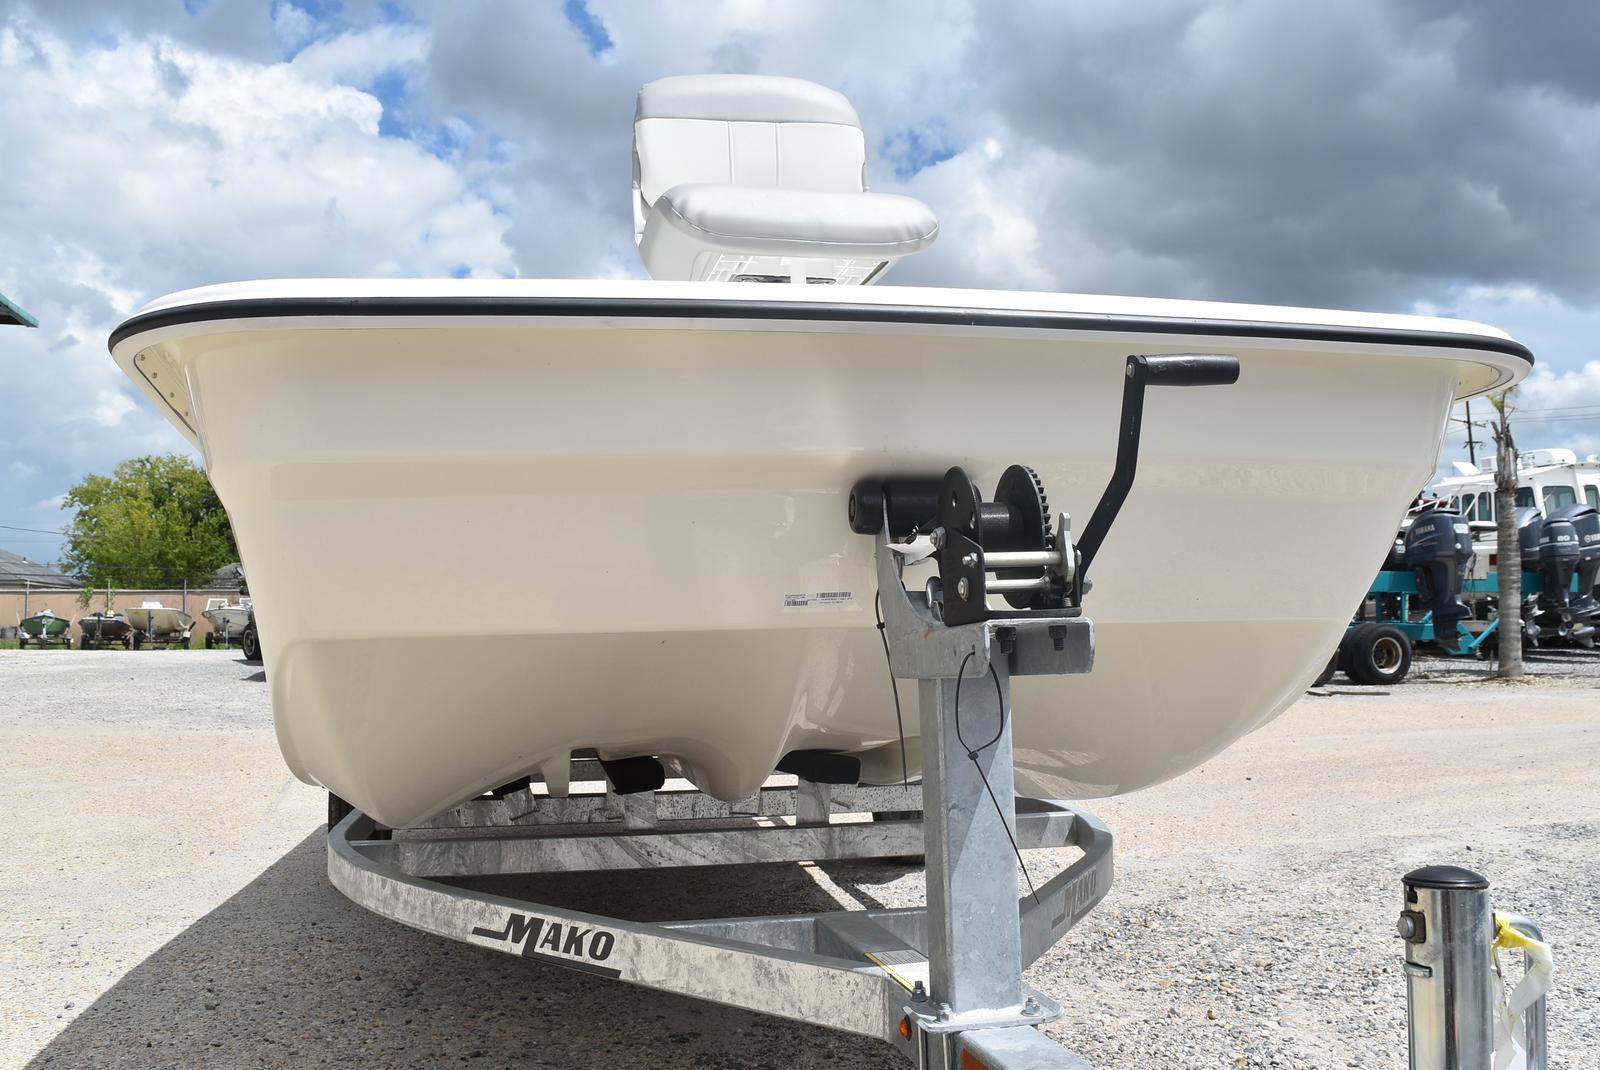 2020 Mako boat for sale, model of the boat is Pro Skiff 17, 75 ELPT & Image # 380 of 702